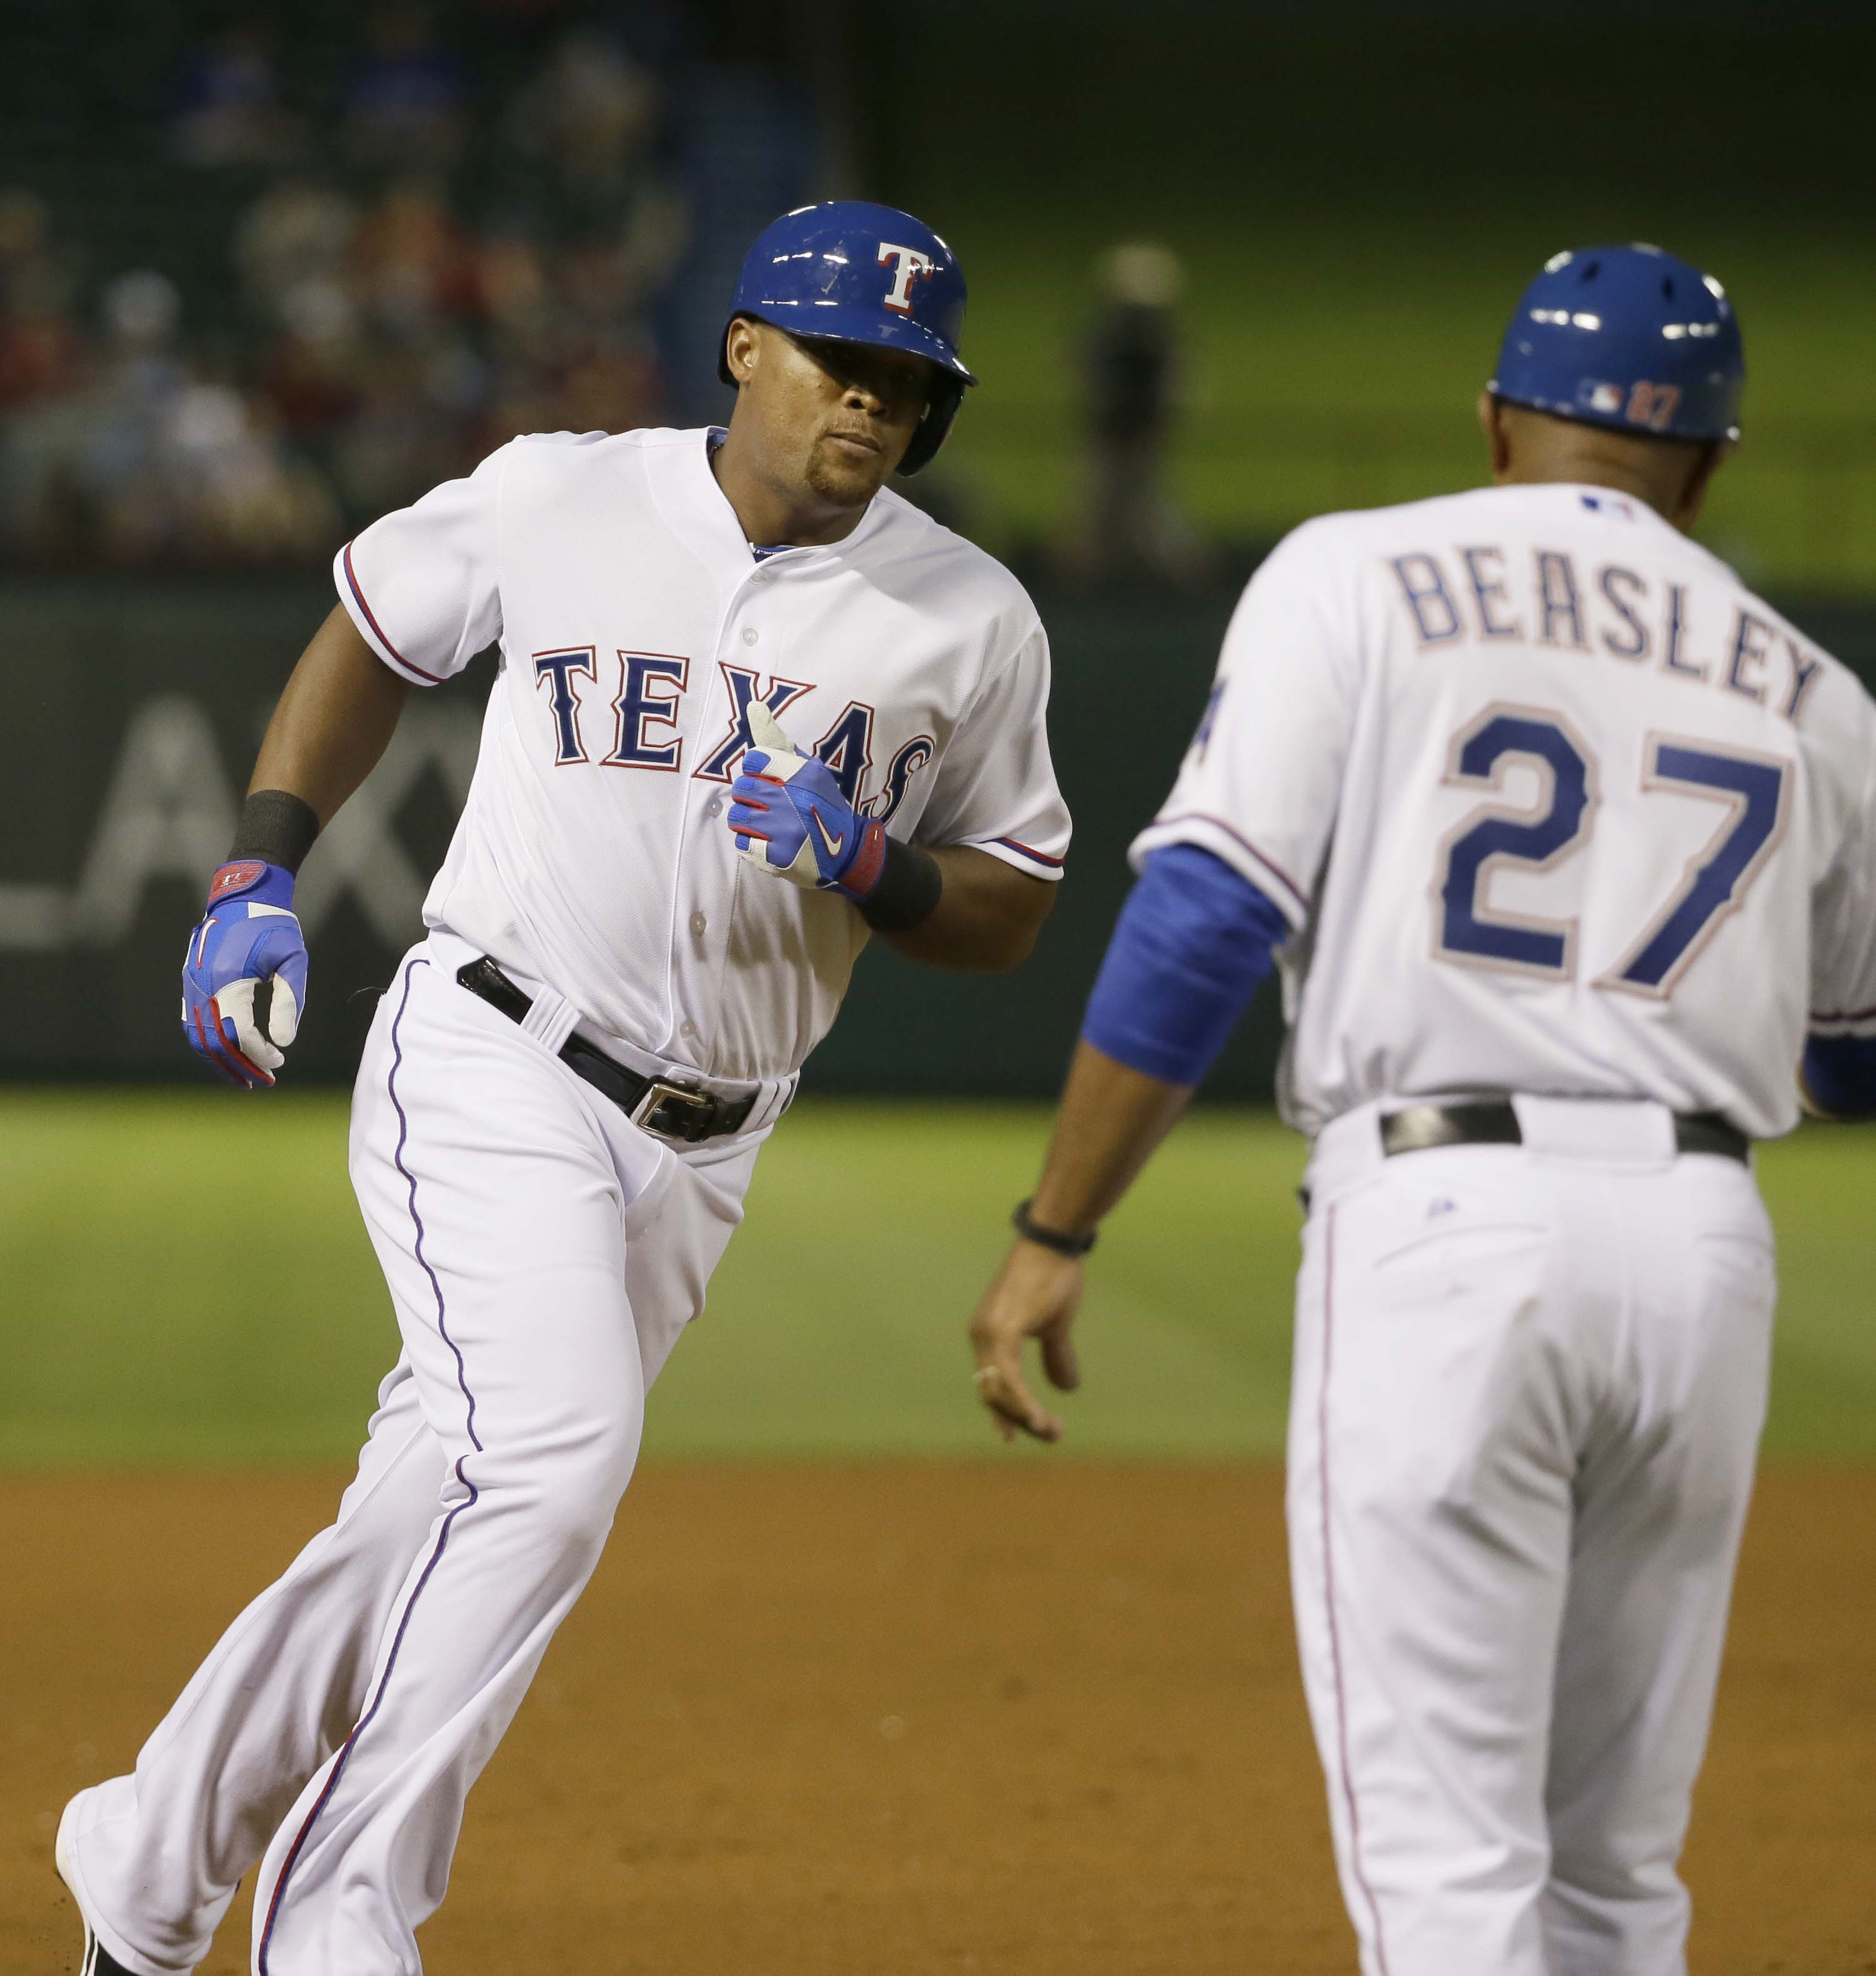 Texas Rangers Adrian Beltre, left, rounds the bases past third base coach Tony Beasley (27) after Beltre's two-run home run during the fourth inning of a baseball game against the Kansas City Royals in Arlington, Texas, Monday, May 11, 2015. Rangers Shin-